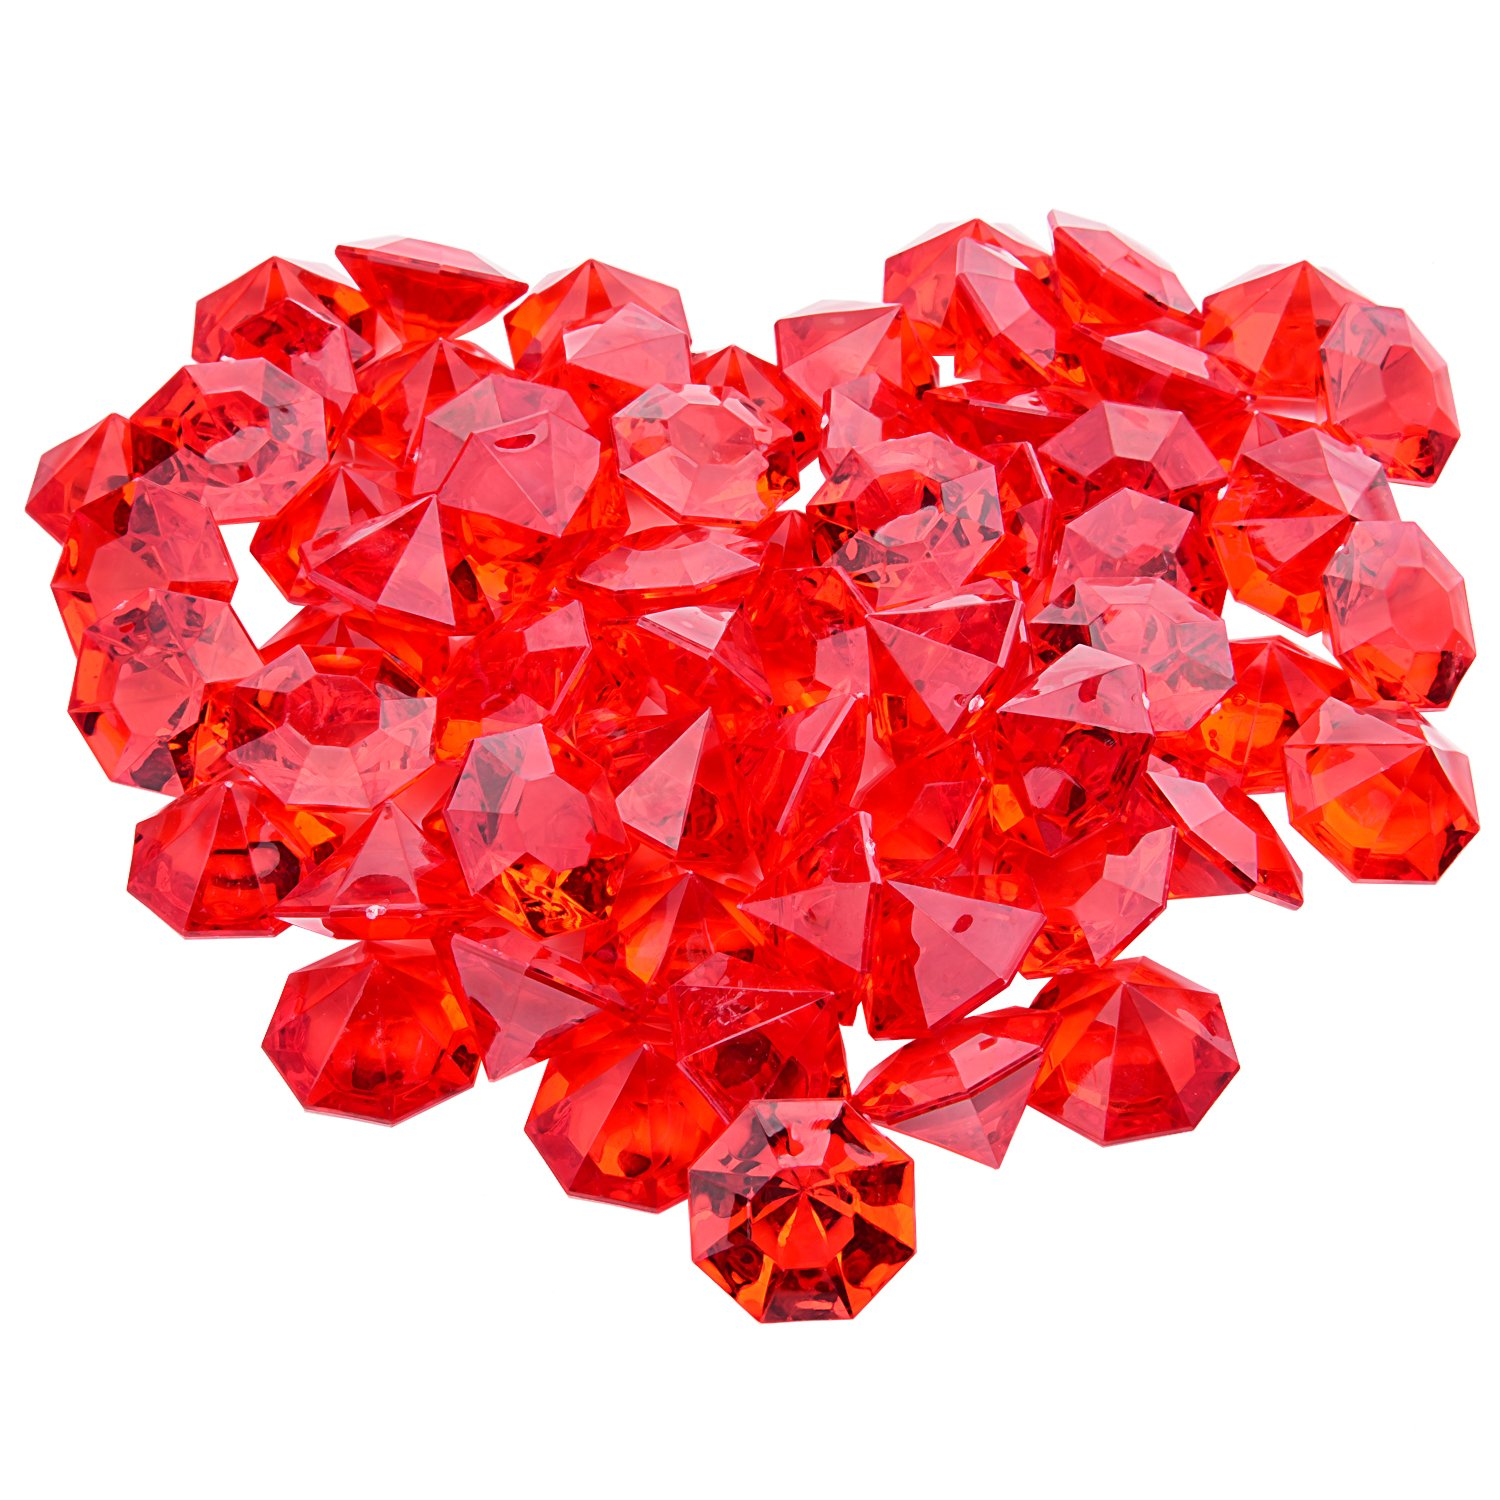 Rose Bridal Shower Livder 66 Pieces Large Clear Acrylic Diamonds Gems for Table Centerpiece Wedding Party Decorations 32 x 24 mm